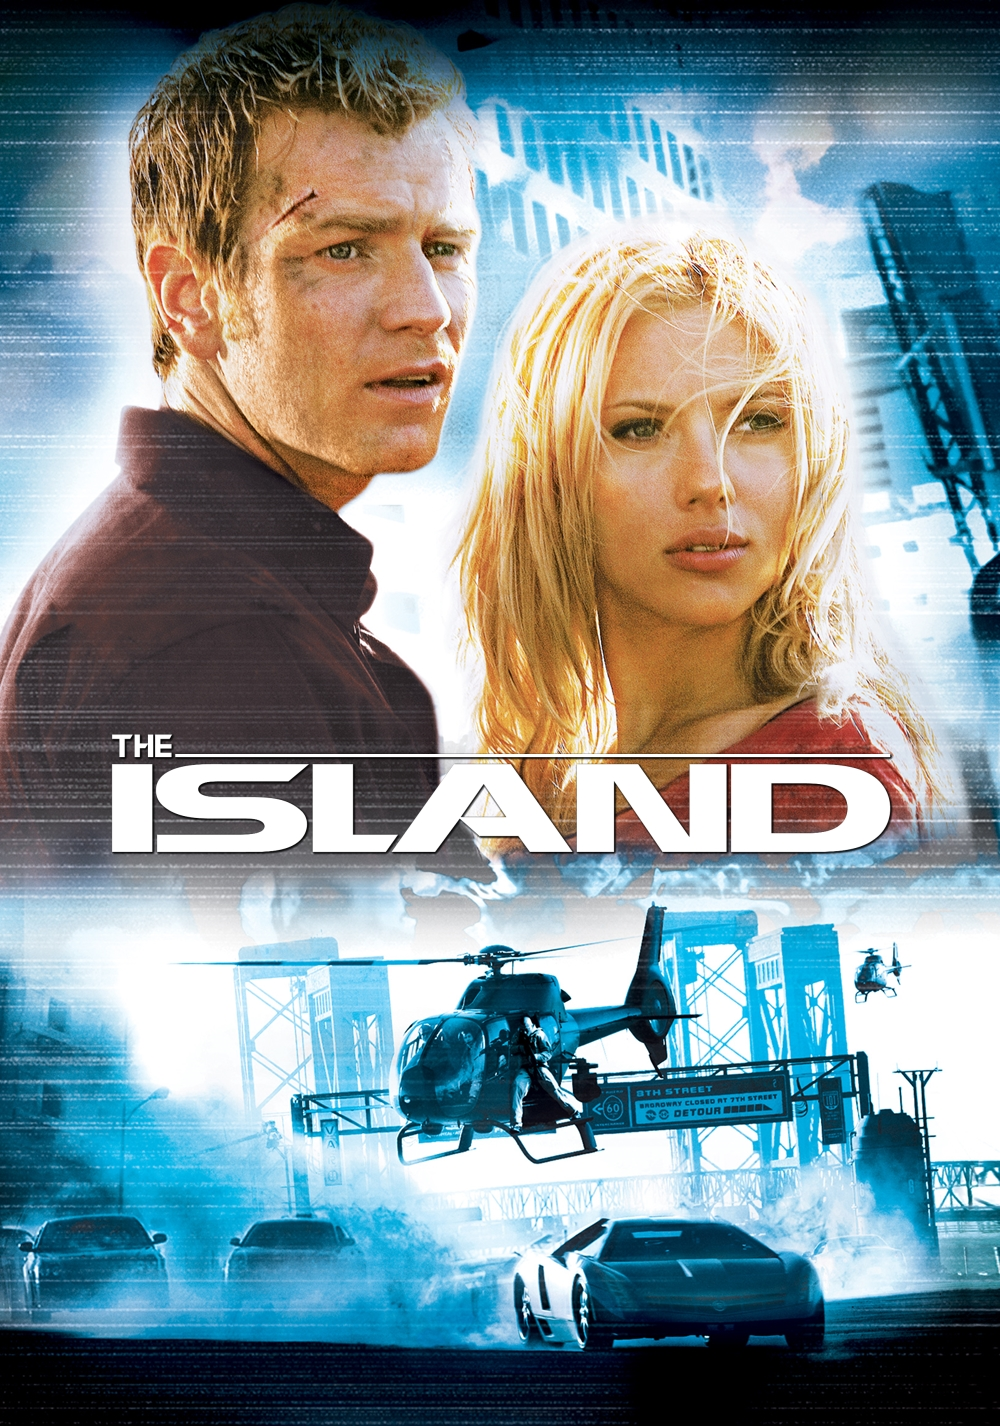 THE ISLAND (2005) MOVIE TAMIL DUBBED HD